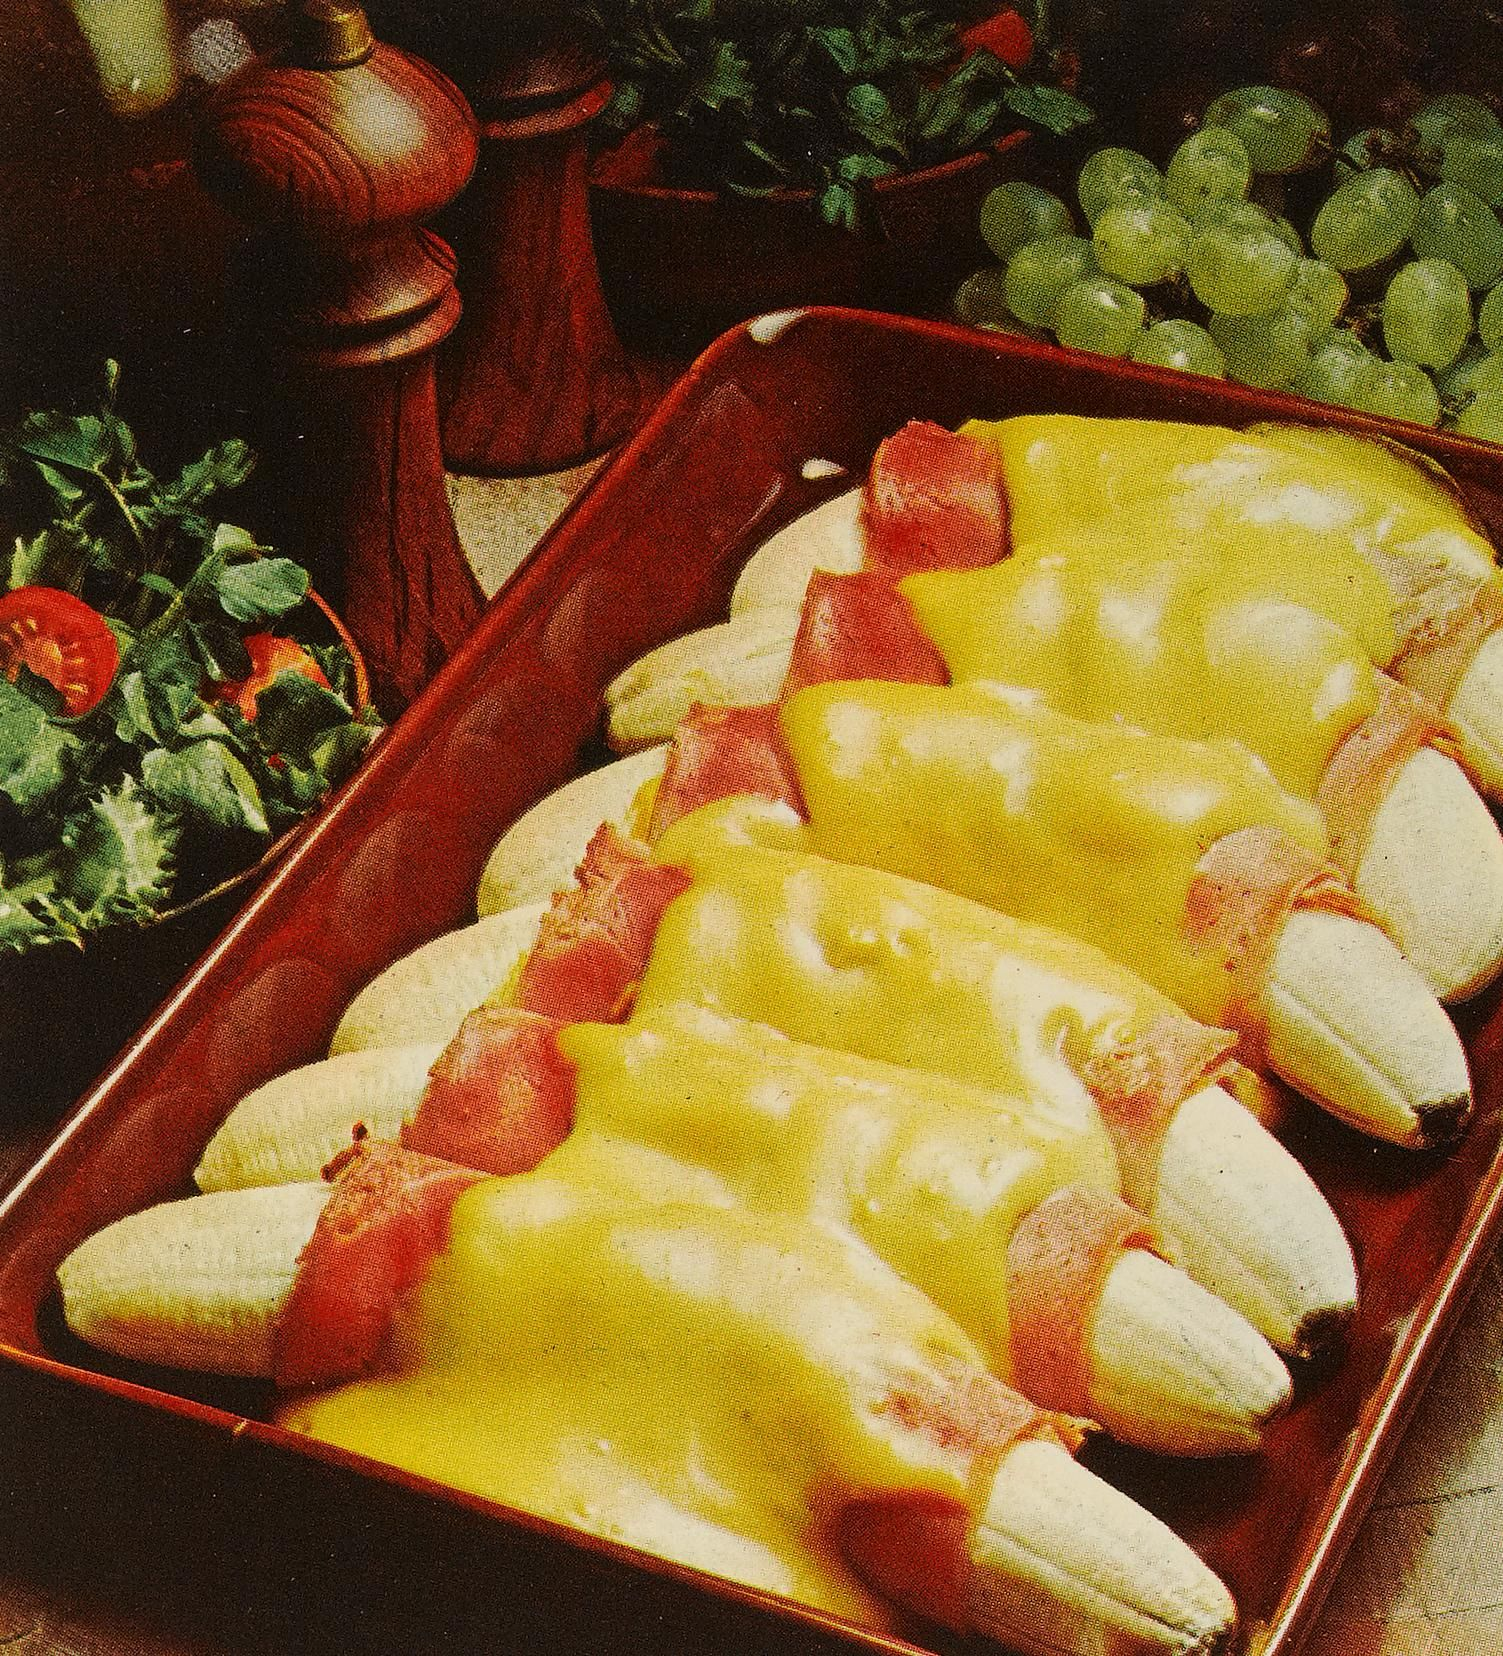 70s dinner party food: If only we'd had Instagram back then